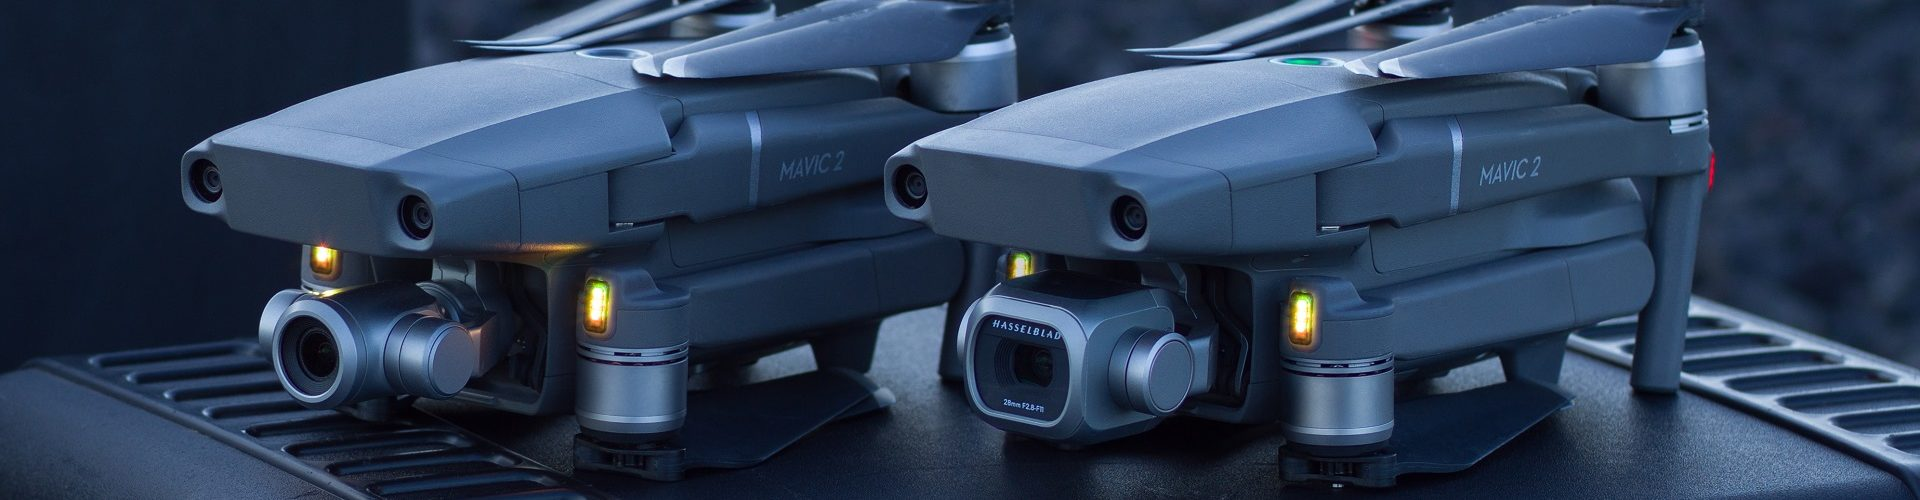 DJI becomes first consumer drones to feature obstacle-detecting sensors on all sides of their bodies.